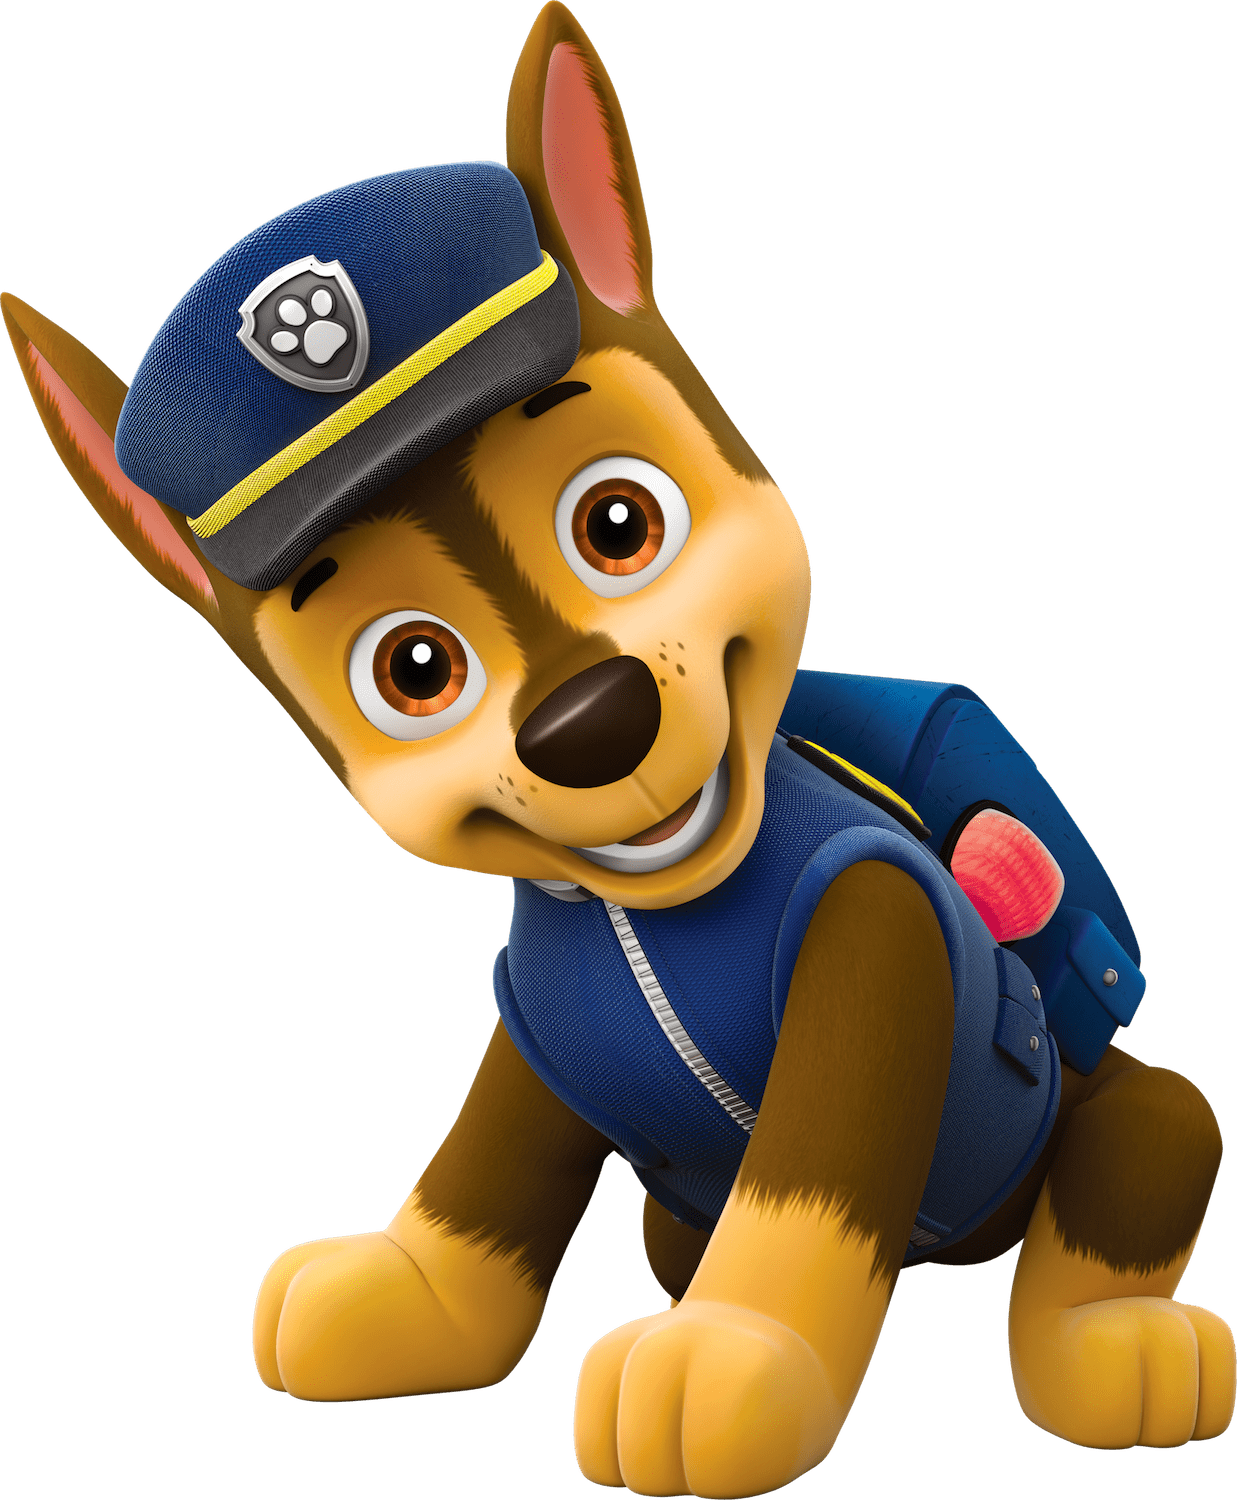 Paw patrol chase clipart image free download Chase Paw Patrol Clipart Png image free download